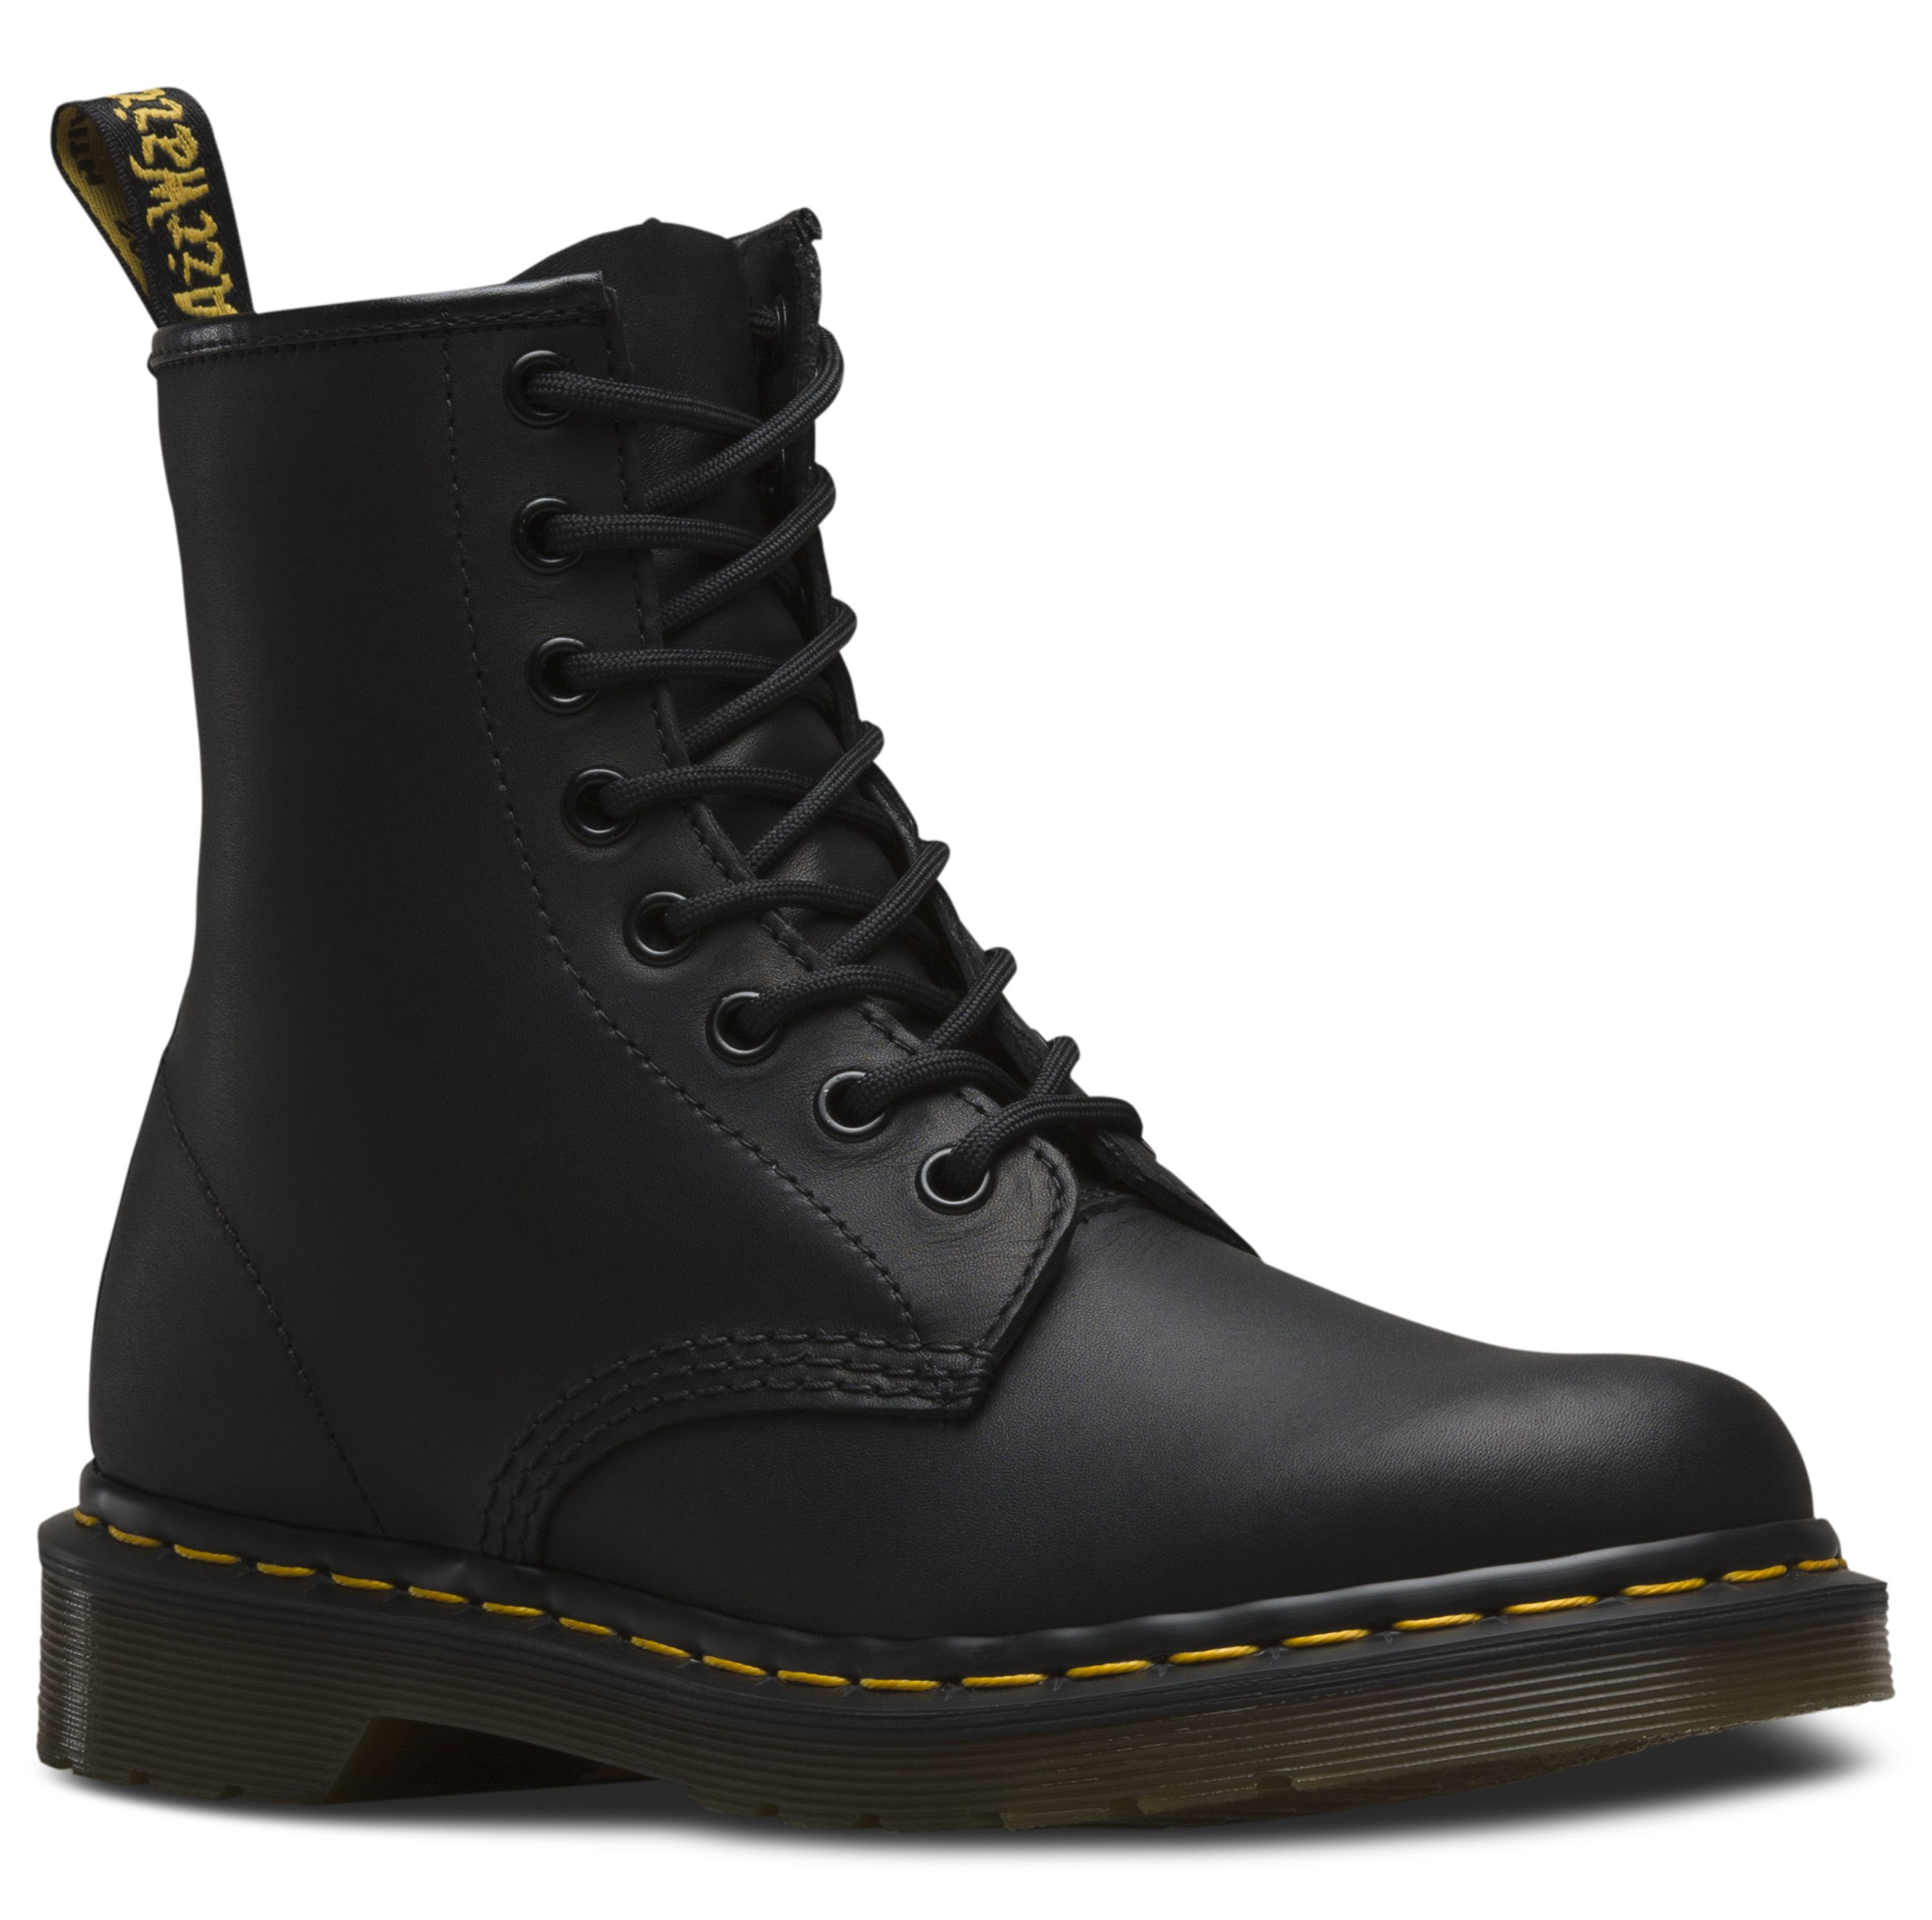 Dr. Martens 1460 Greasy Leather Lace Up Boots in Black Greasy